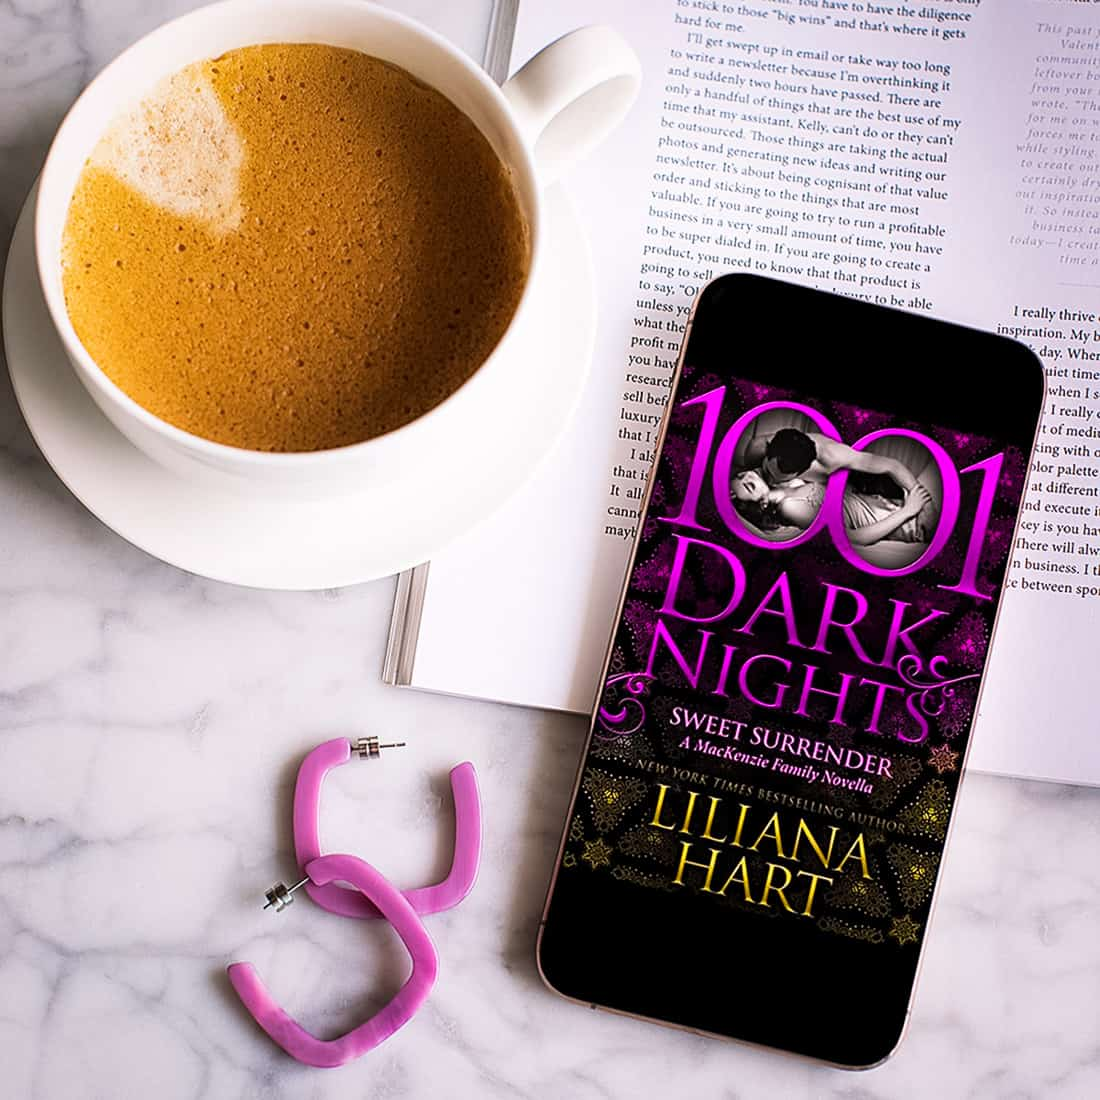 Read an excerpt from Sweet Surrender by Liliana Hart, book #11.5 of the Mackenzie Family series and part of the 1001 Dark Nights family of novellas